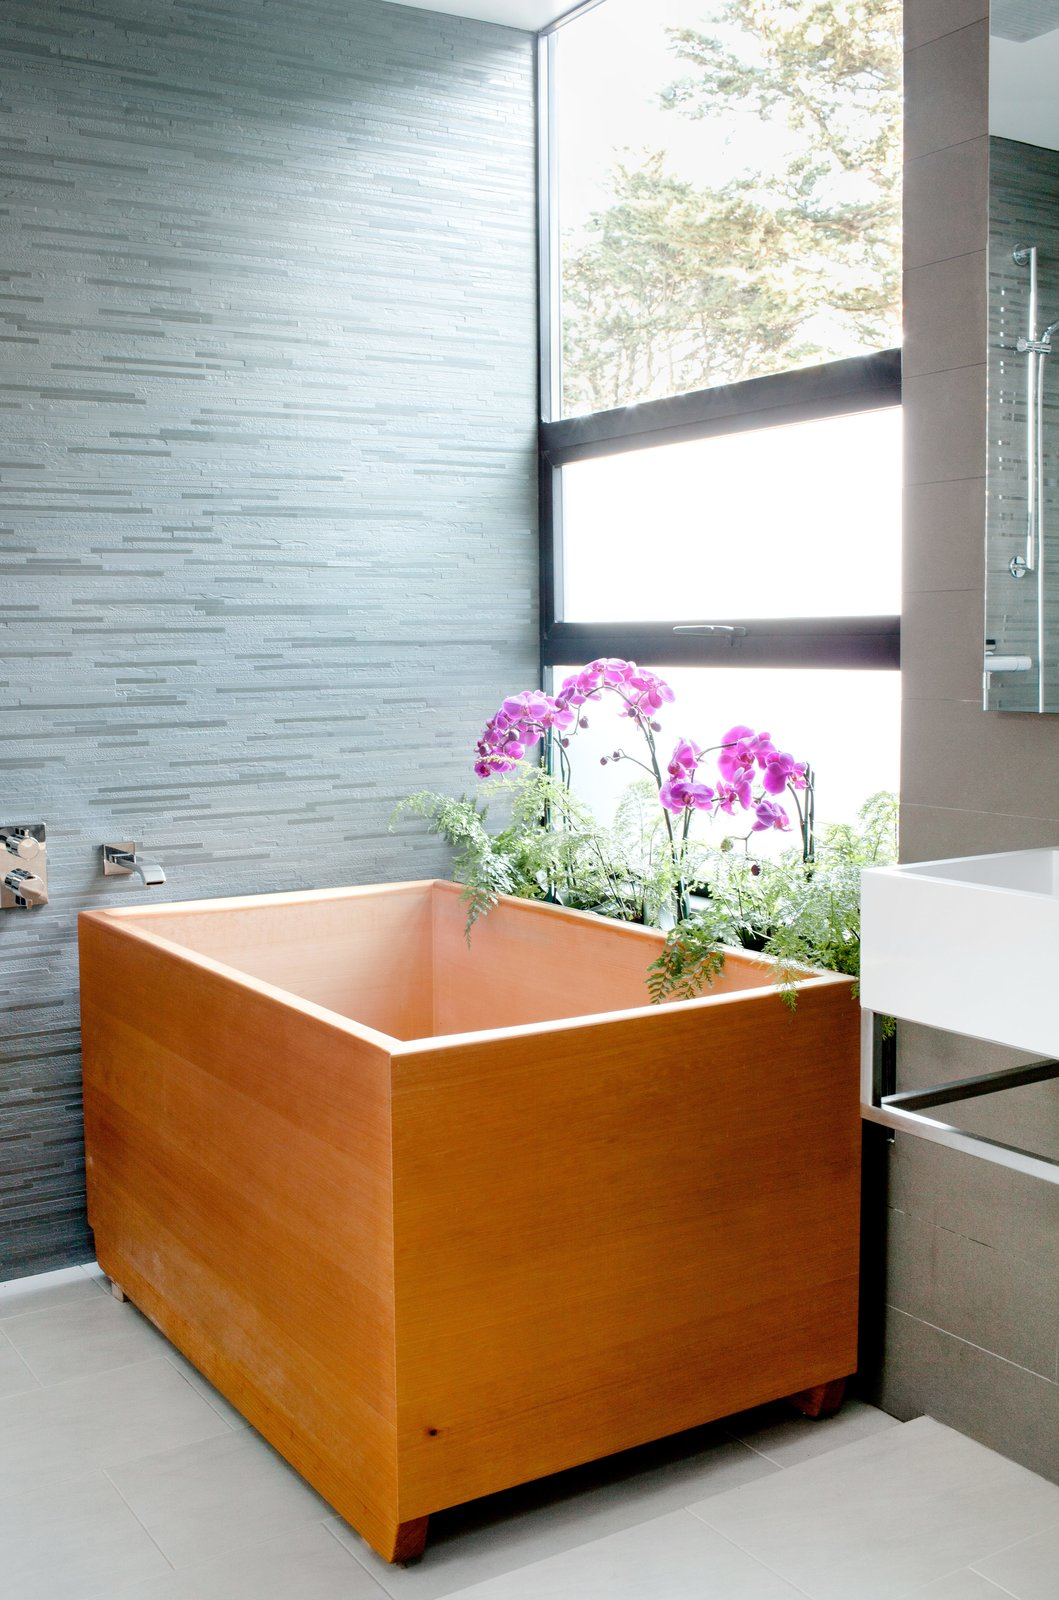 Charred House bathroom with wood atandalone tub and flowers